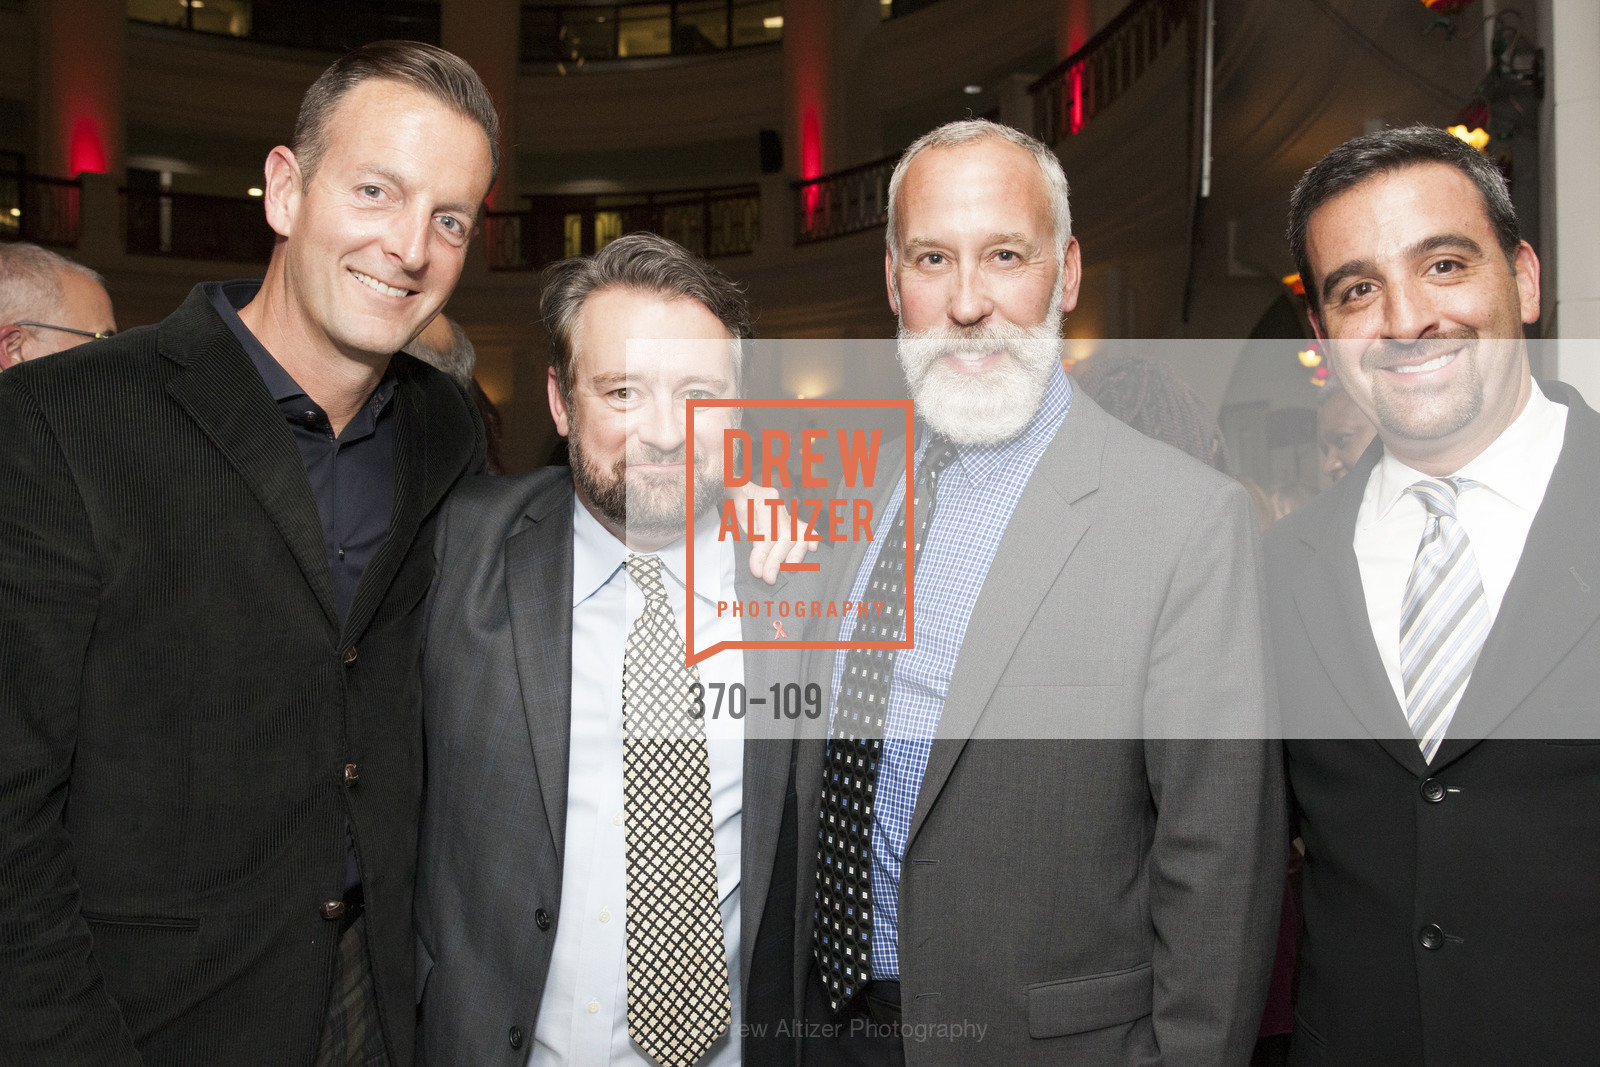 Alan Pass, Ben Plumley, Robert Shafer, Jordan Suffin, PANGAEA GLOBAL HEALTH Leadership Dinner at Rotunda in Oakland, The Rotunda. Oakland, May 11th, 2015,Drew Altizer, Drew Altizer Photography, full-service agency, private events, San Francisco photographer, photographer california